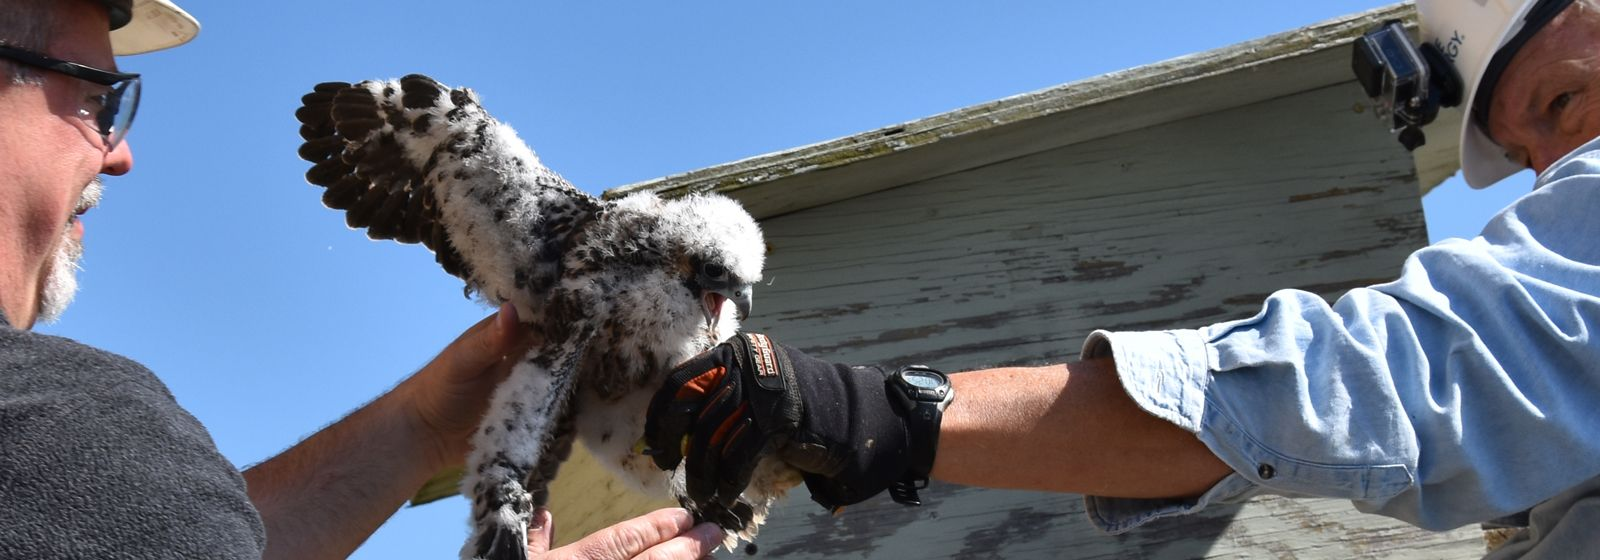 Power plant's falcon chicks are banded together